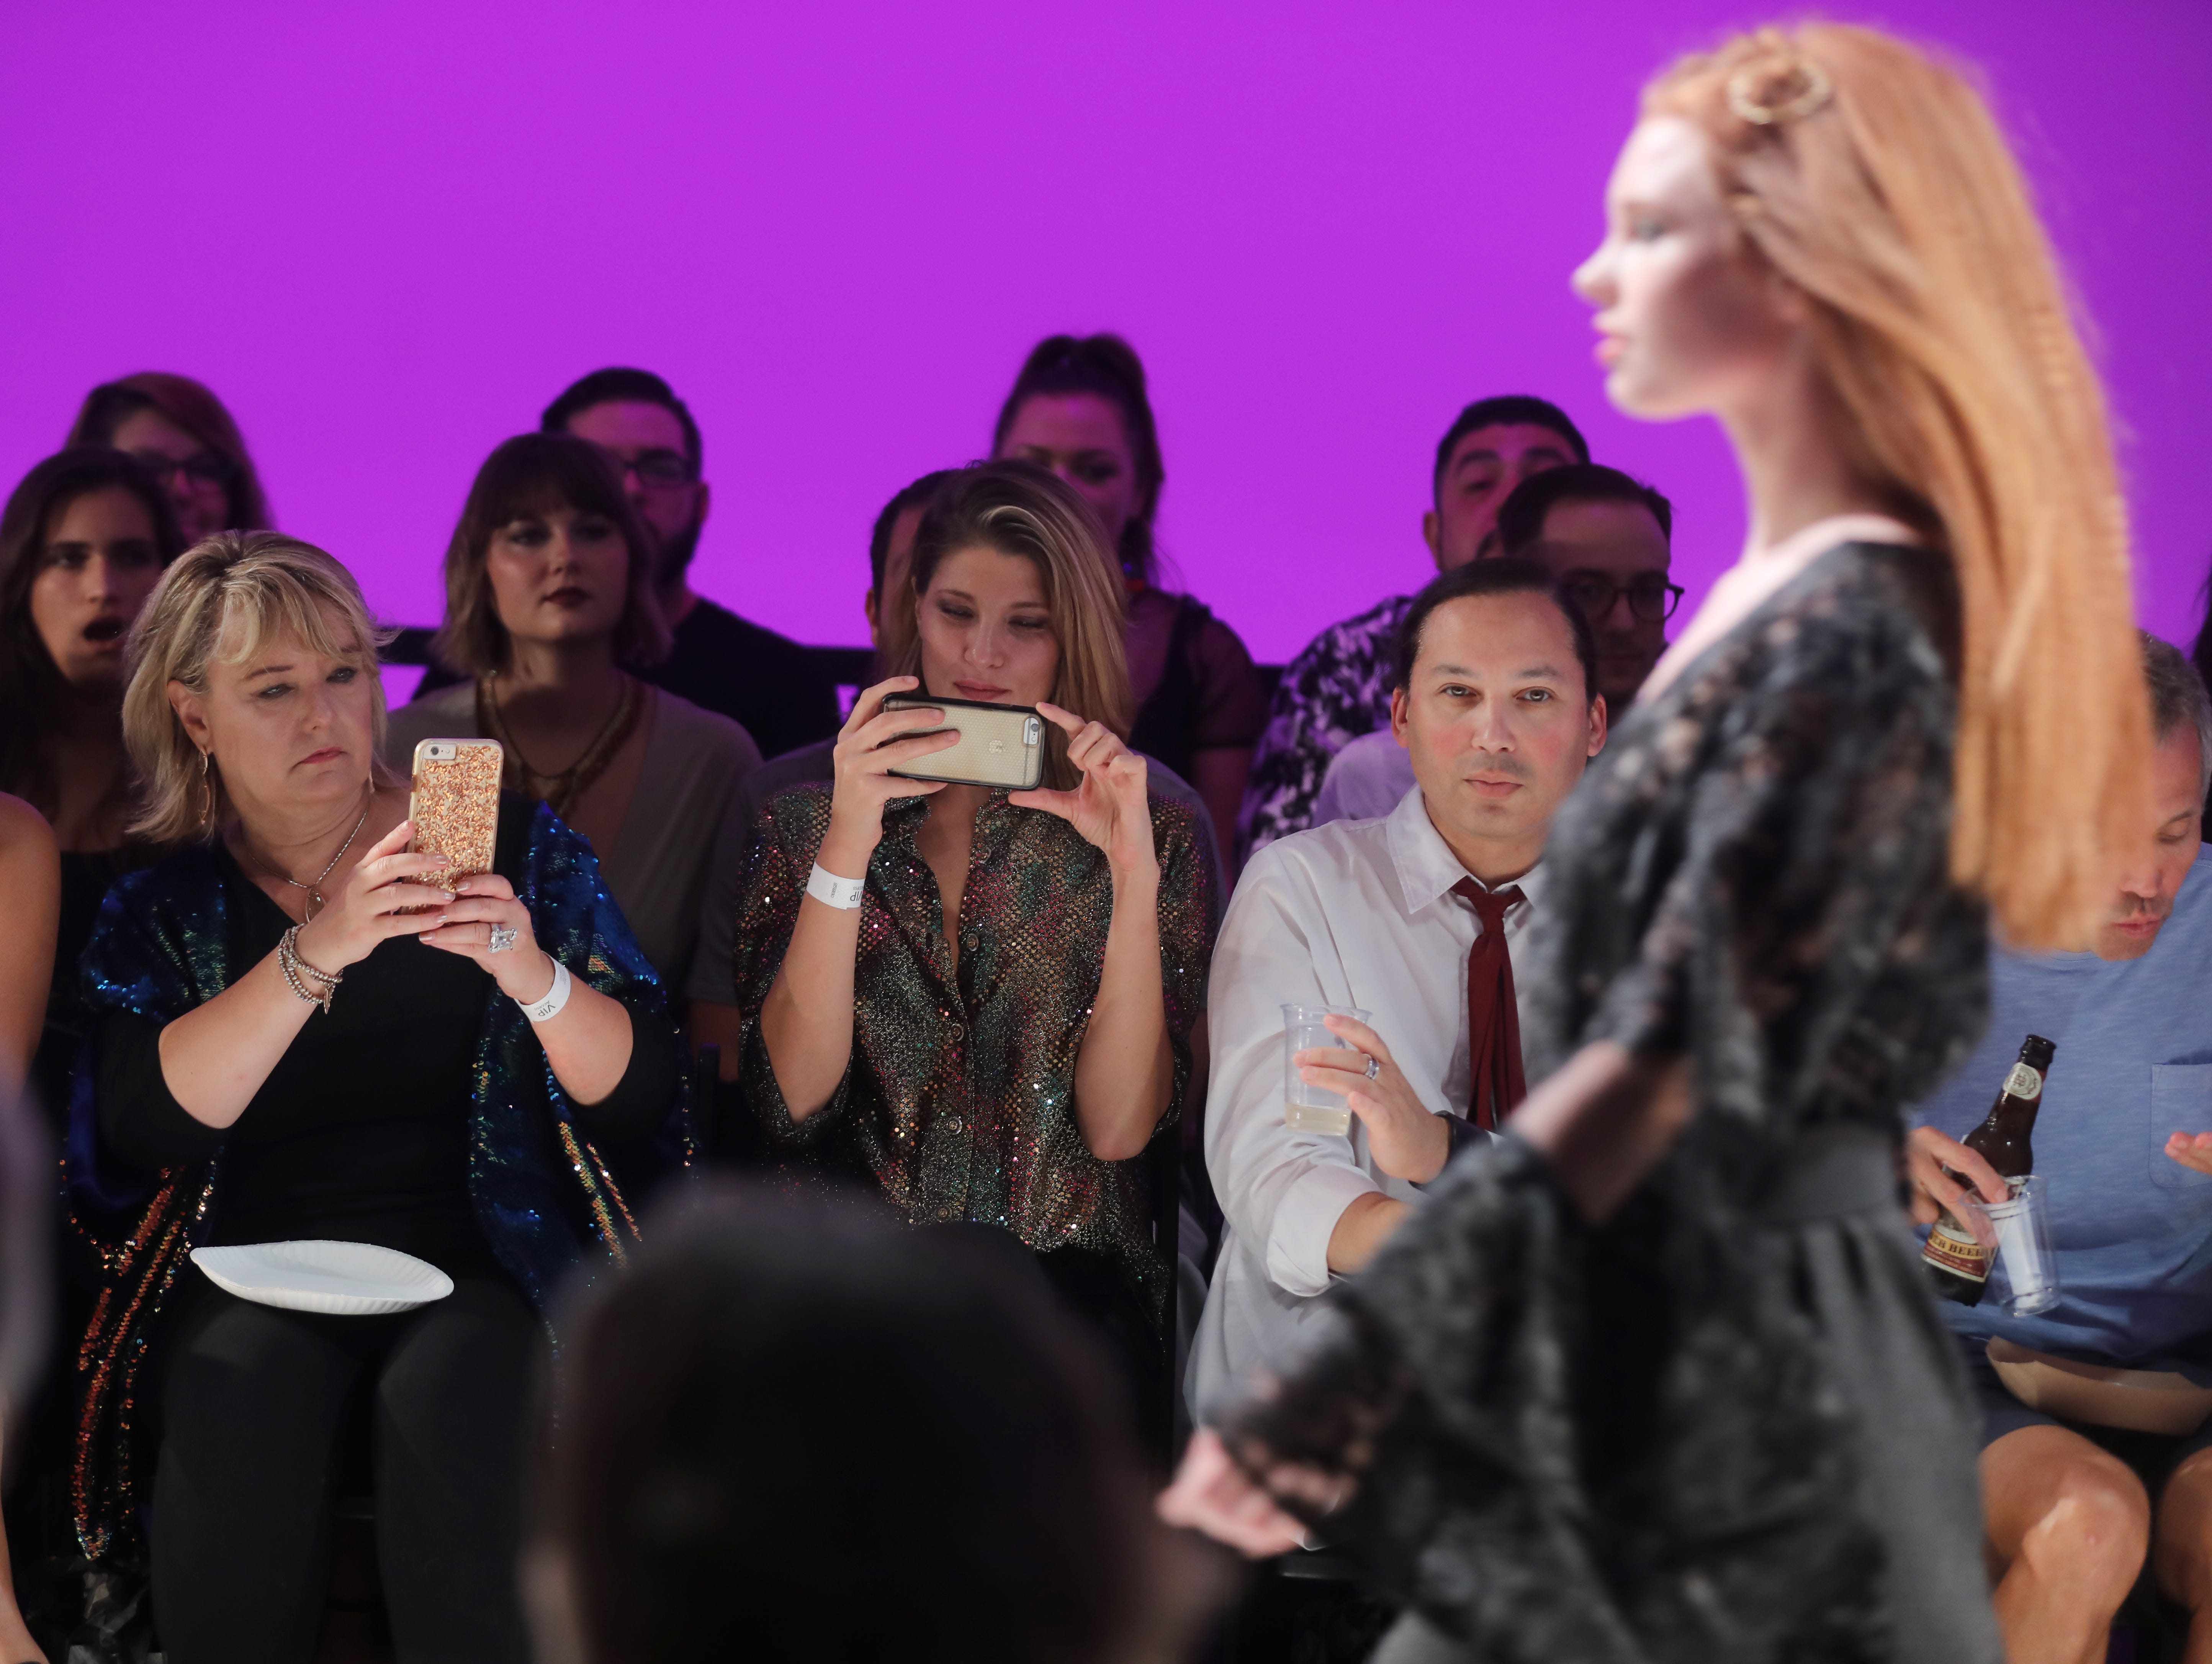 Members of the audience take photos during the Boundless 2018 fashion show held at Studio 615 on Saturday, September 8, 2018.